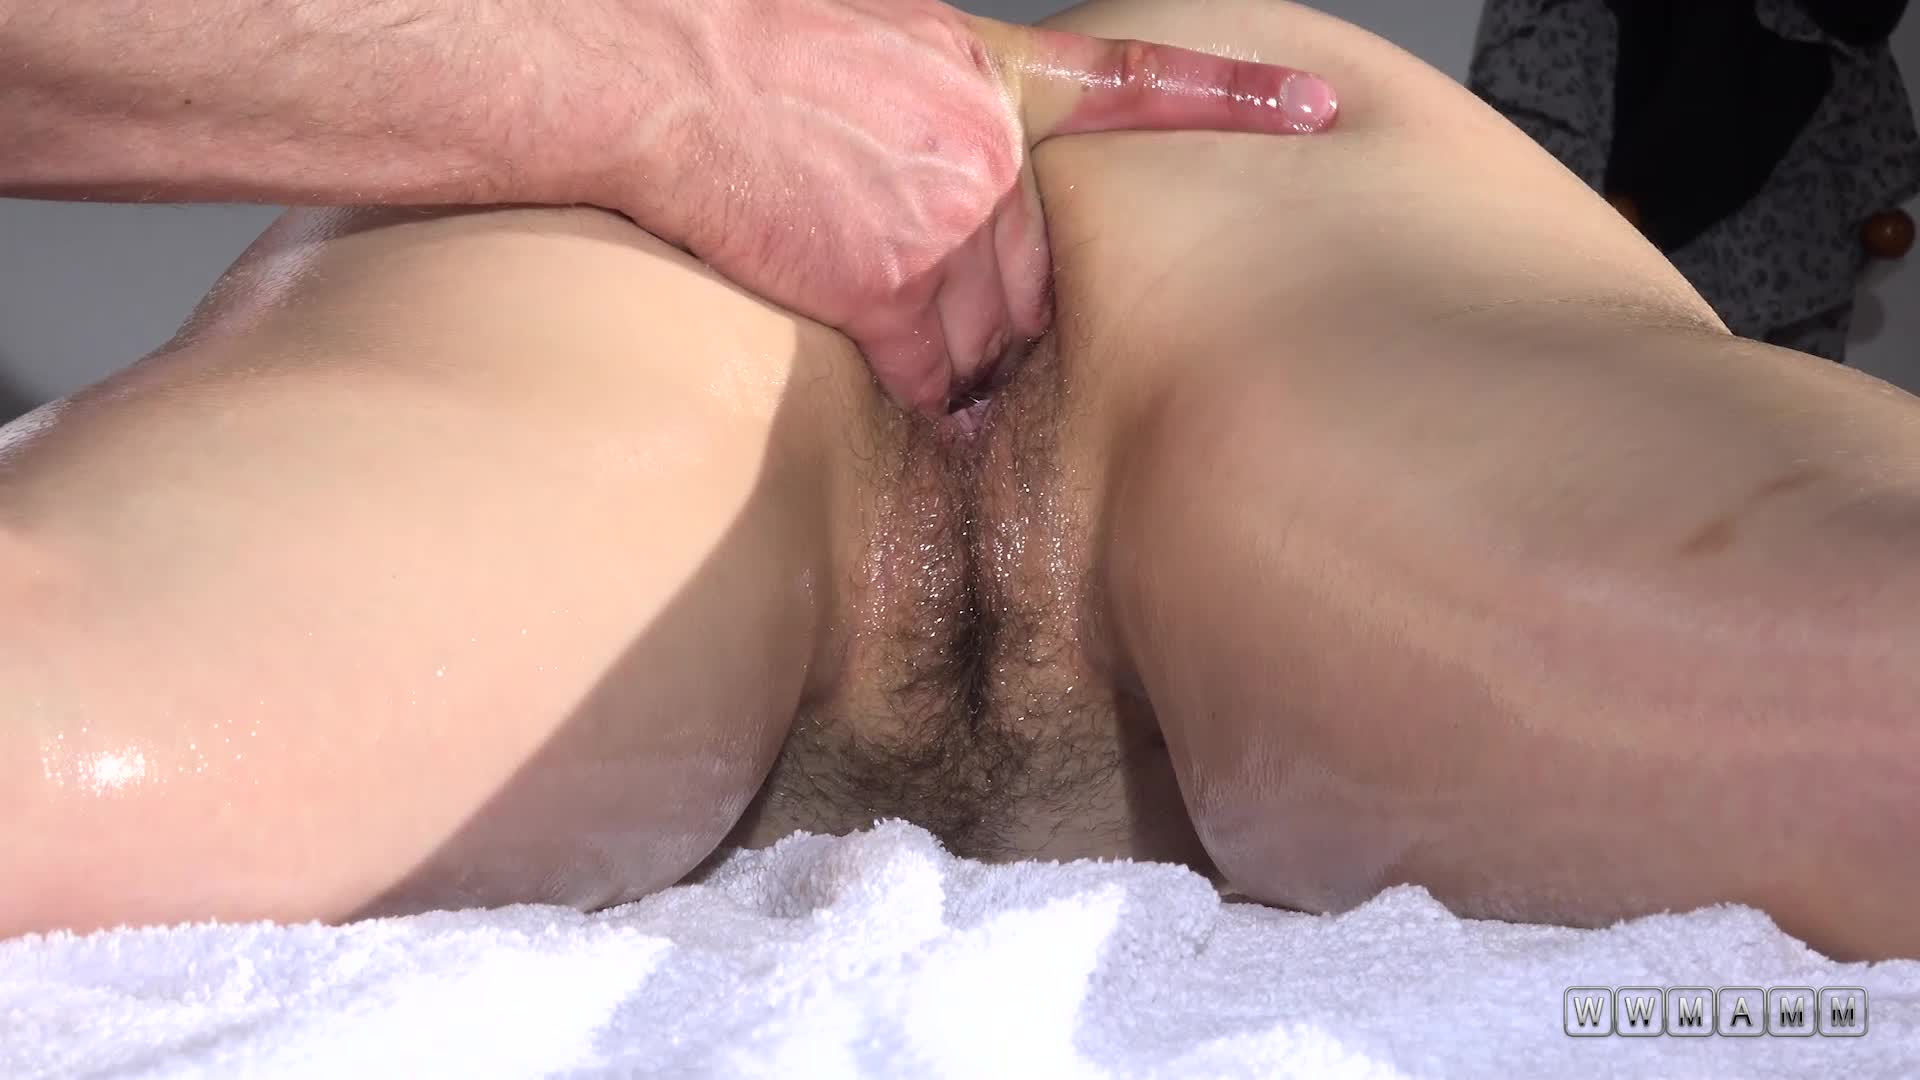 Cute And Young Alisha Got Three Fingers From The Masseur